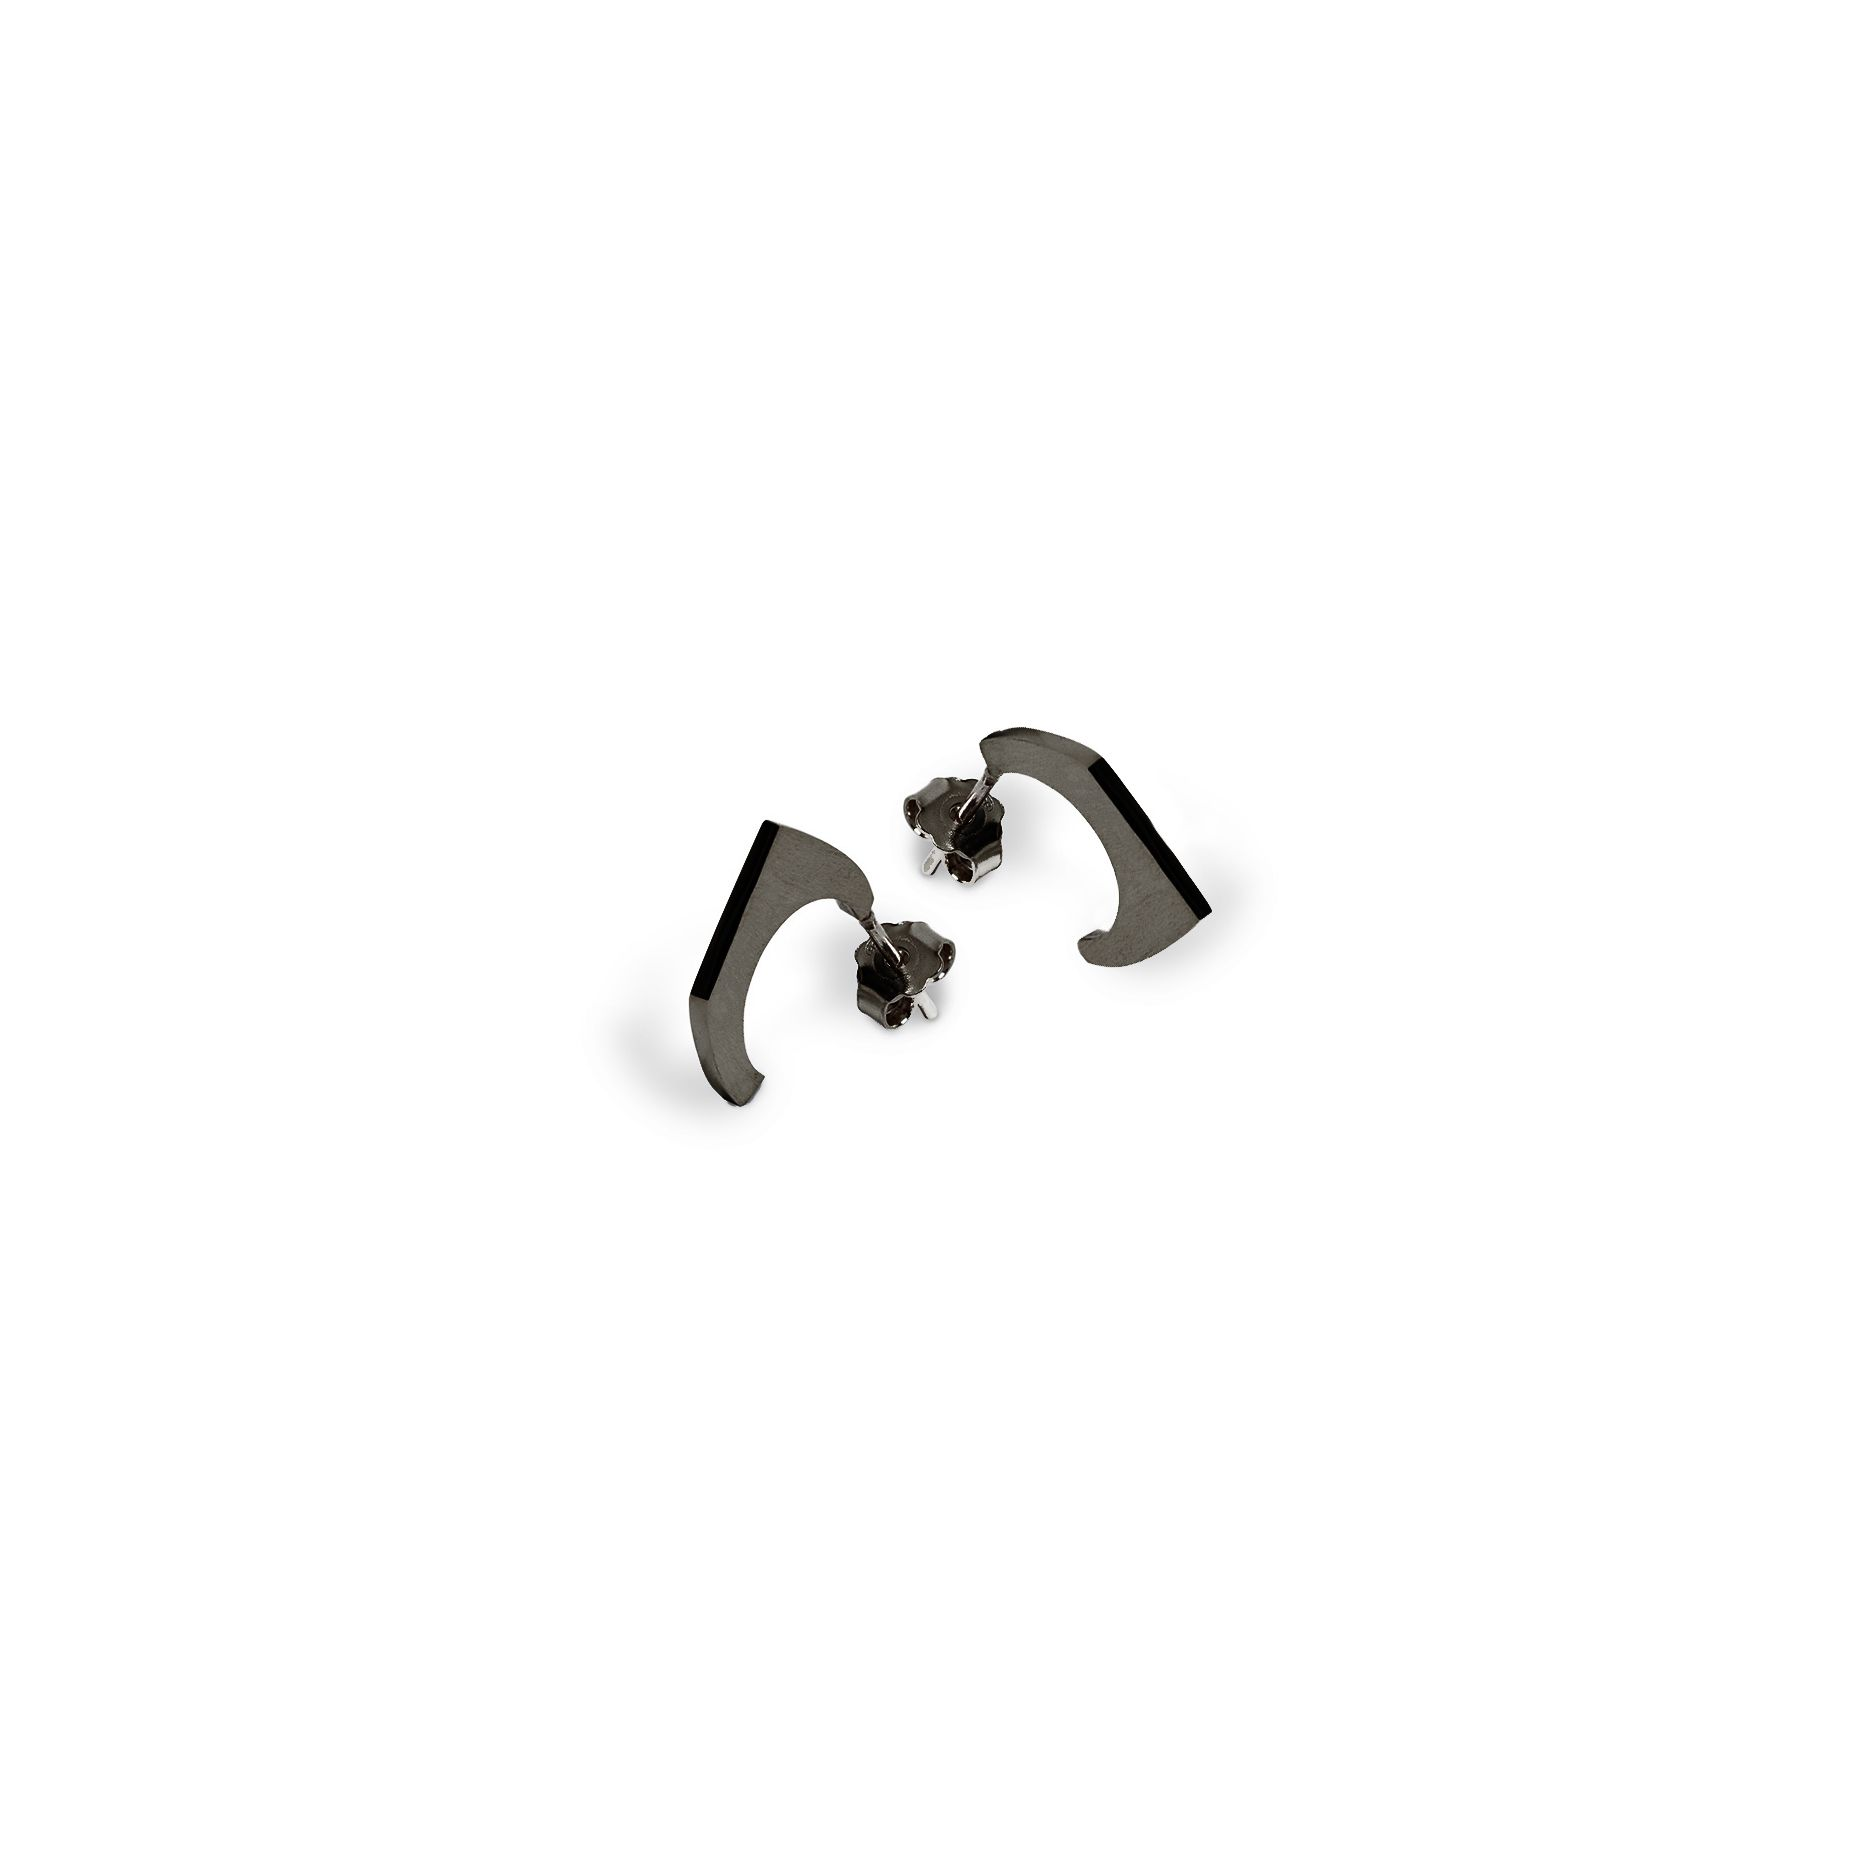 1 element 'Congiunzioni' earrings Earrings in black rhodium 925 silver plated